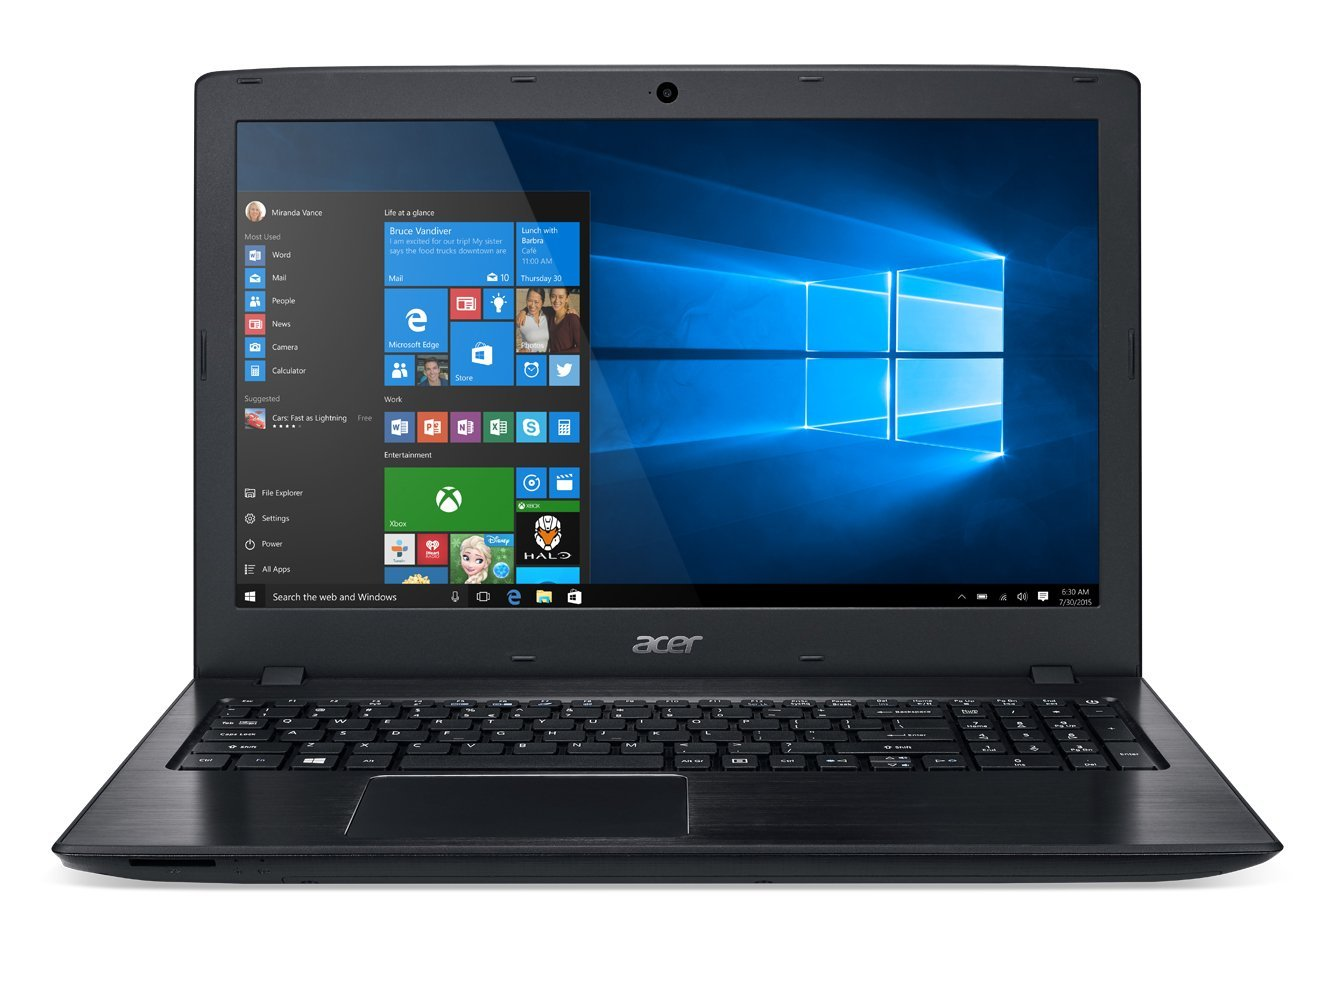 Acer Aspire E 15 E5-575G-53VG Gaming Notebook Review acer aspire e 15 gaming notebook review Acer Aspire E 15 E5-575G-53VG Gaming Notebook Review 5101da3eec8d0eee20ebcf237f5d533e